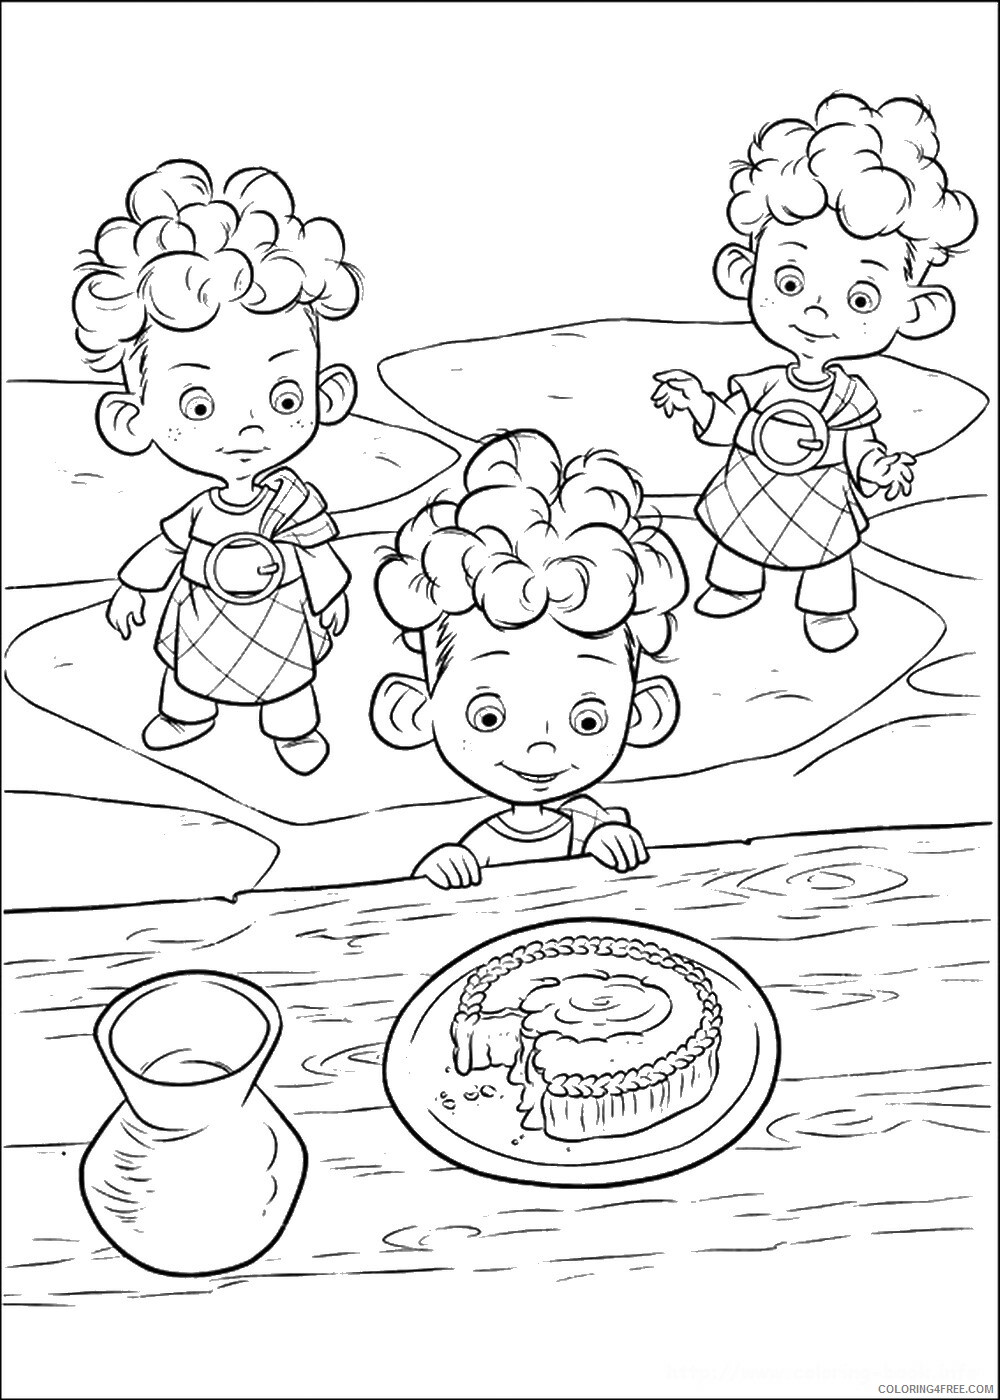 Brave Coloring Pages TV Film brave_cl_15 Printable 2020 01354 Coloring4free